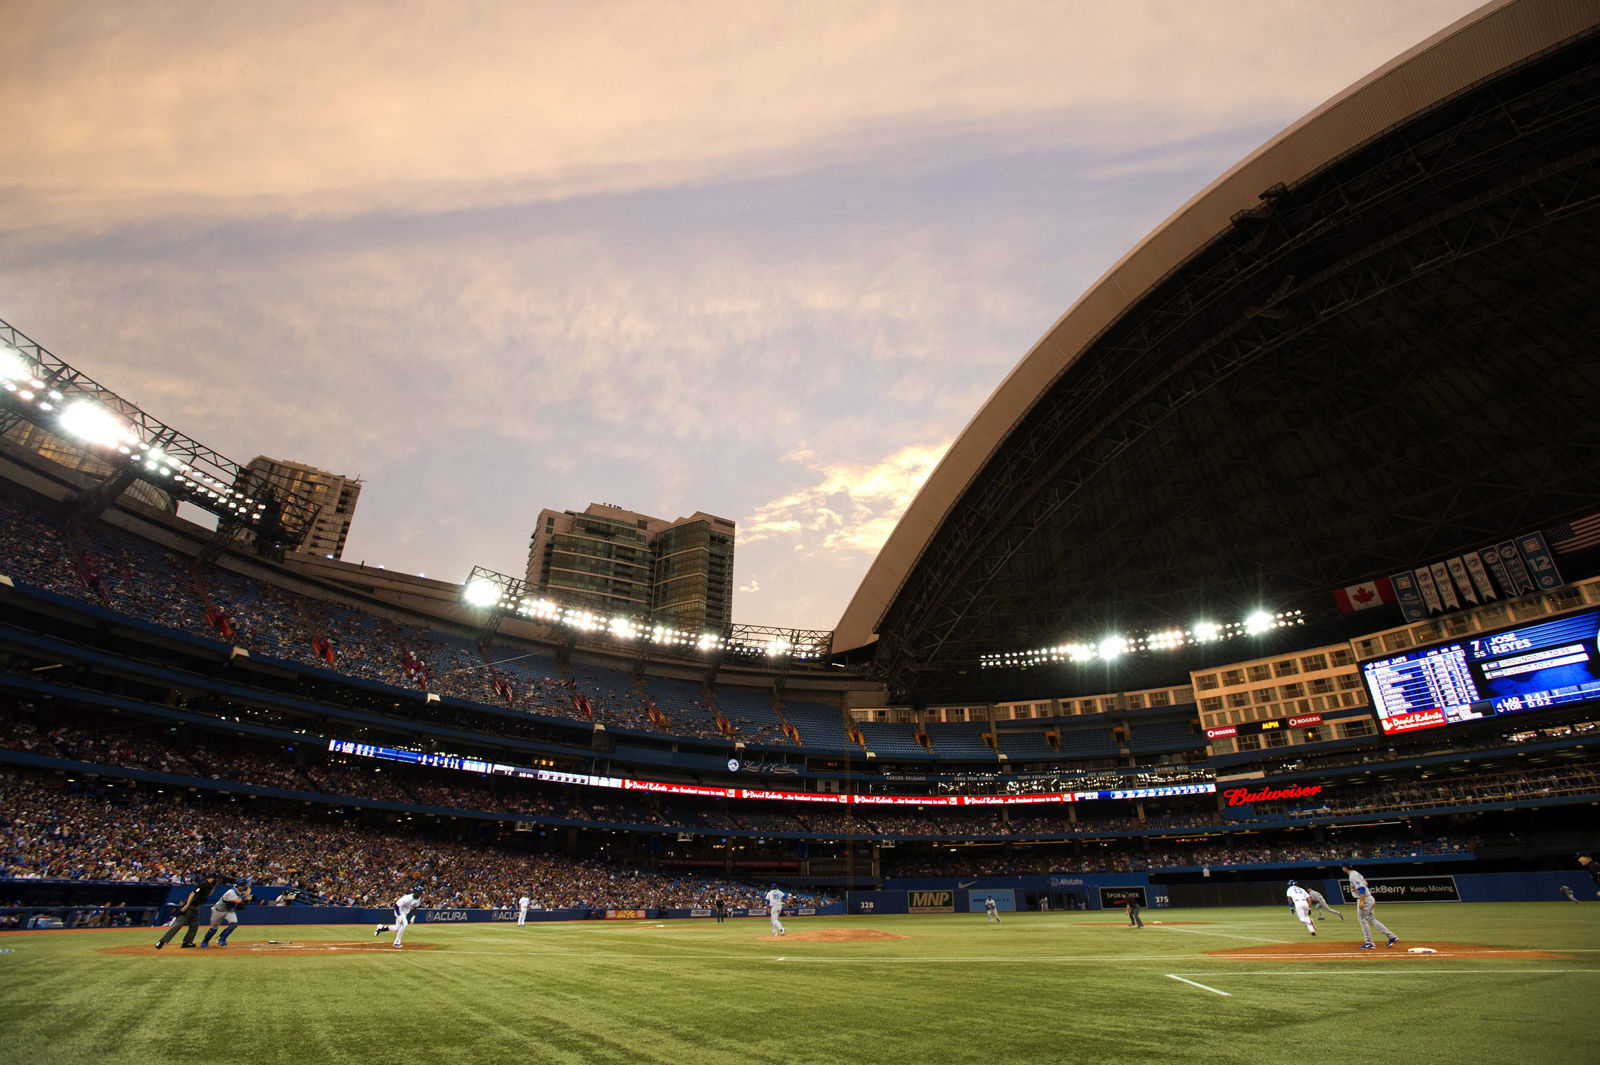 The home of the Toronto Blue Jays, the Rogers Centre, comes in at No. 6 on the list with an average cost of $78.22. File. (THE CANADIAN PRESS/Frank Gunn)